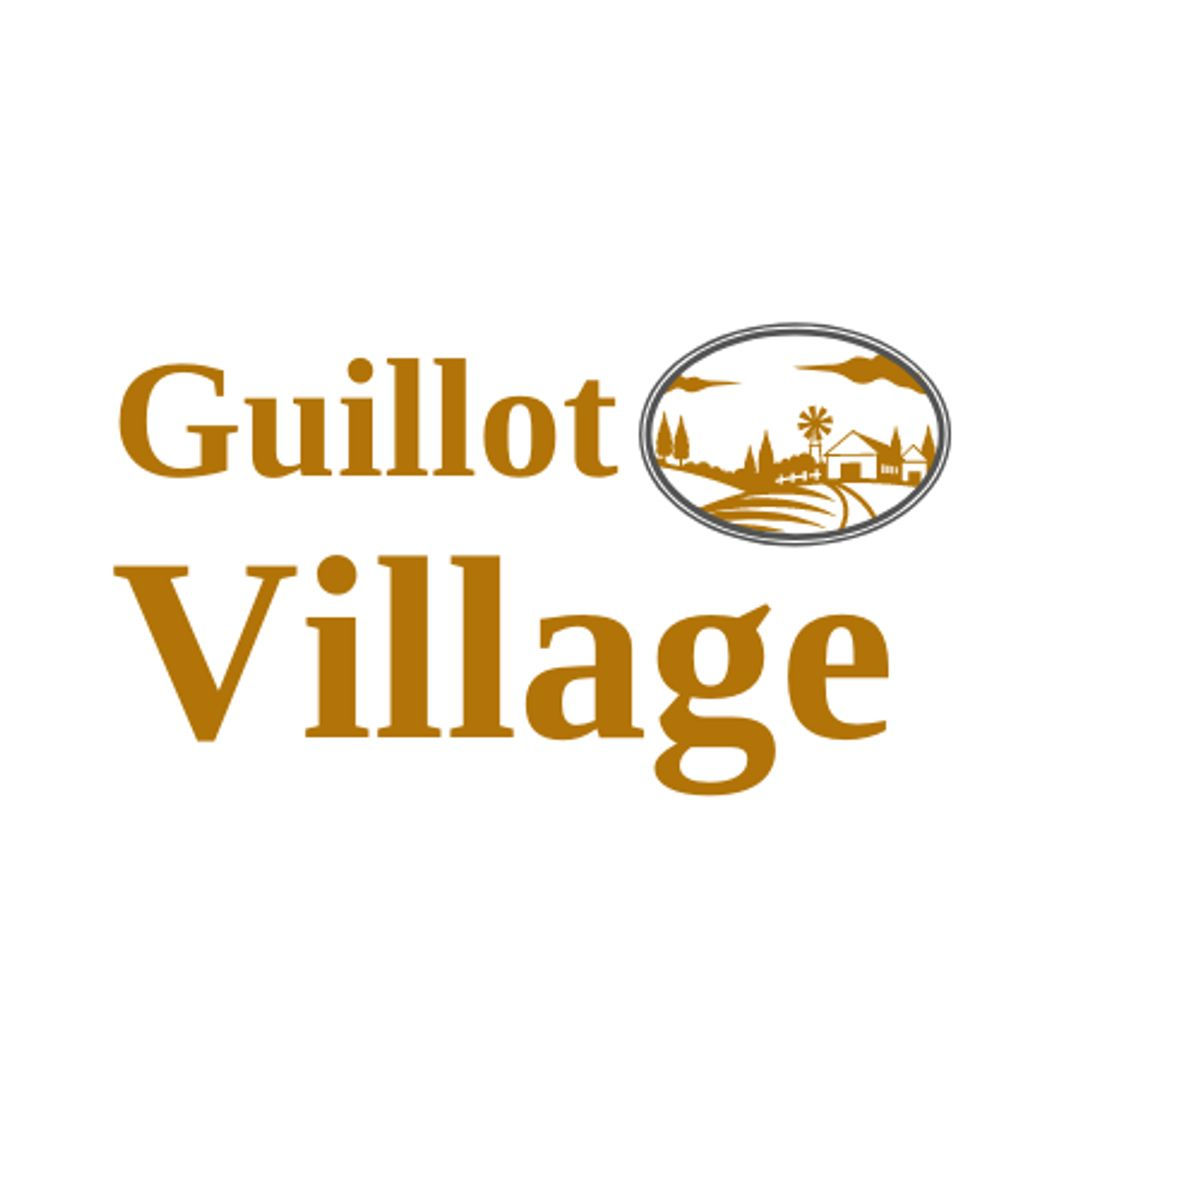 Guillot Village